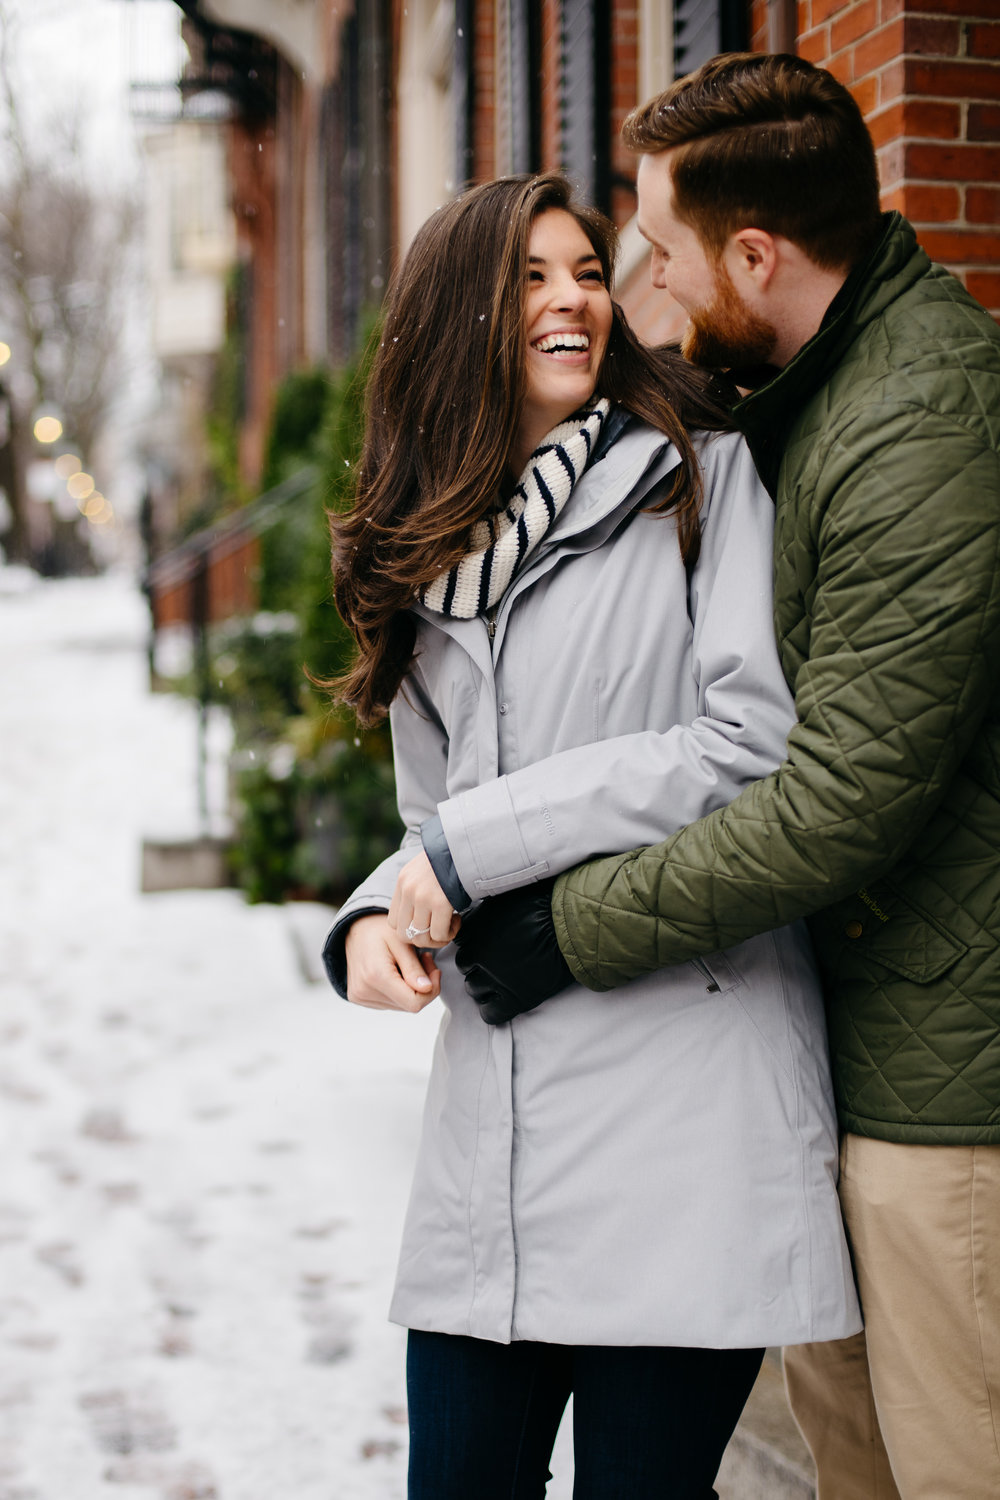 boston engagement photos in the snow